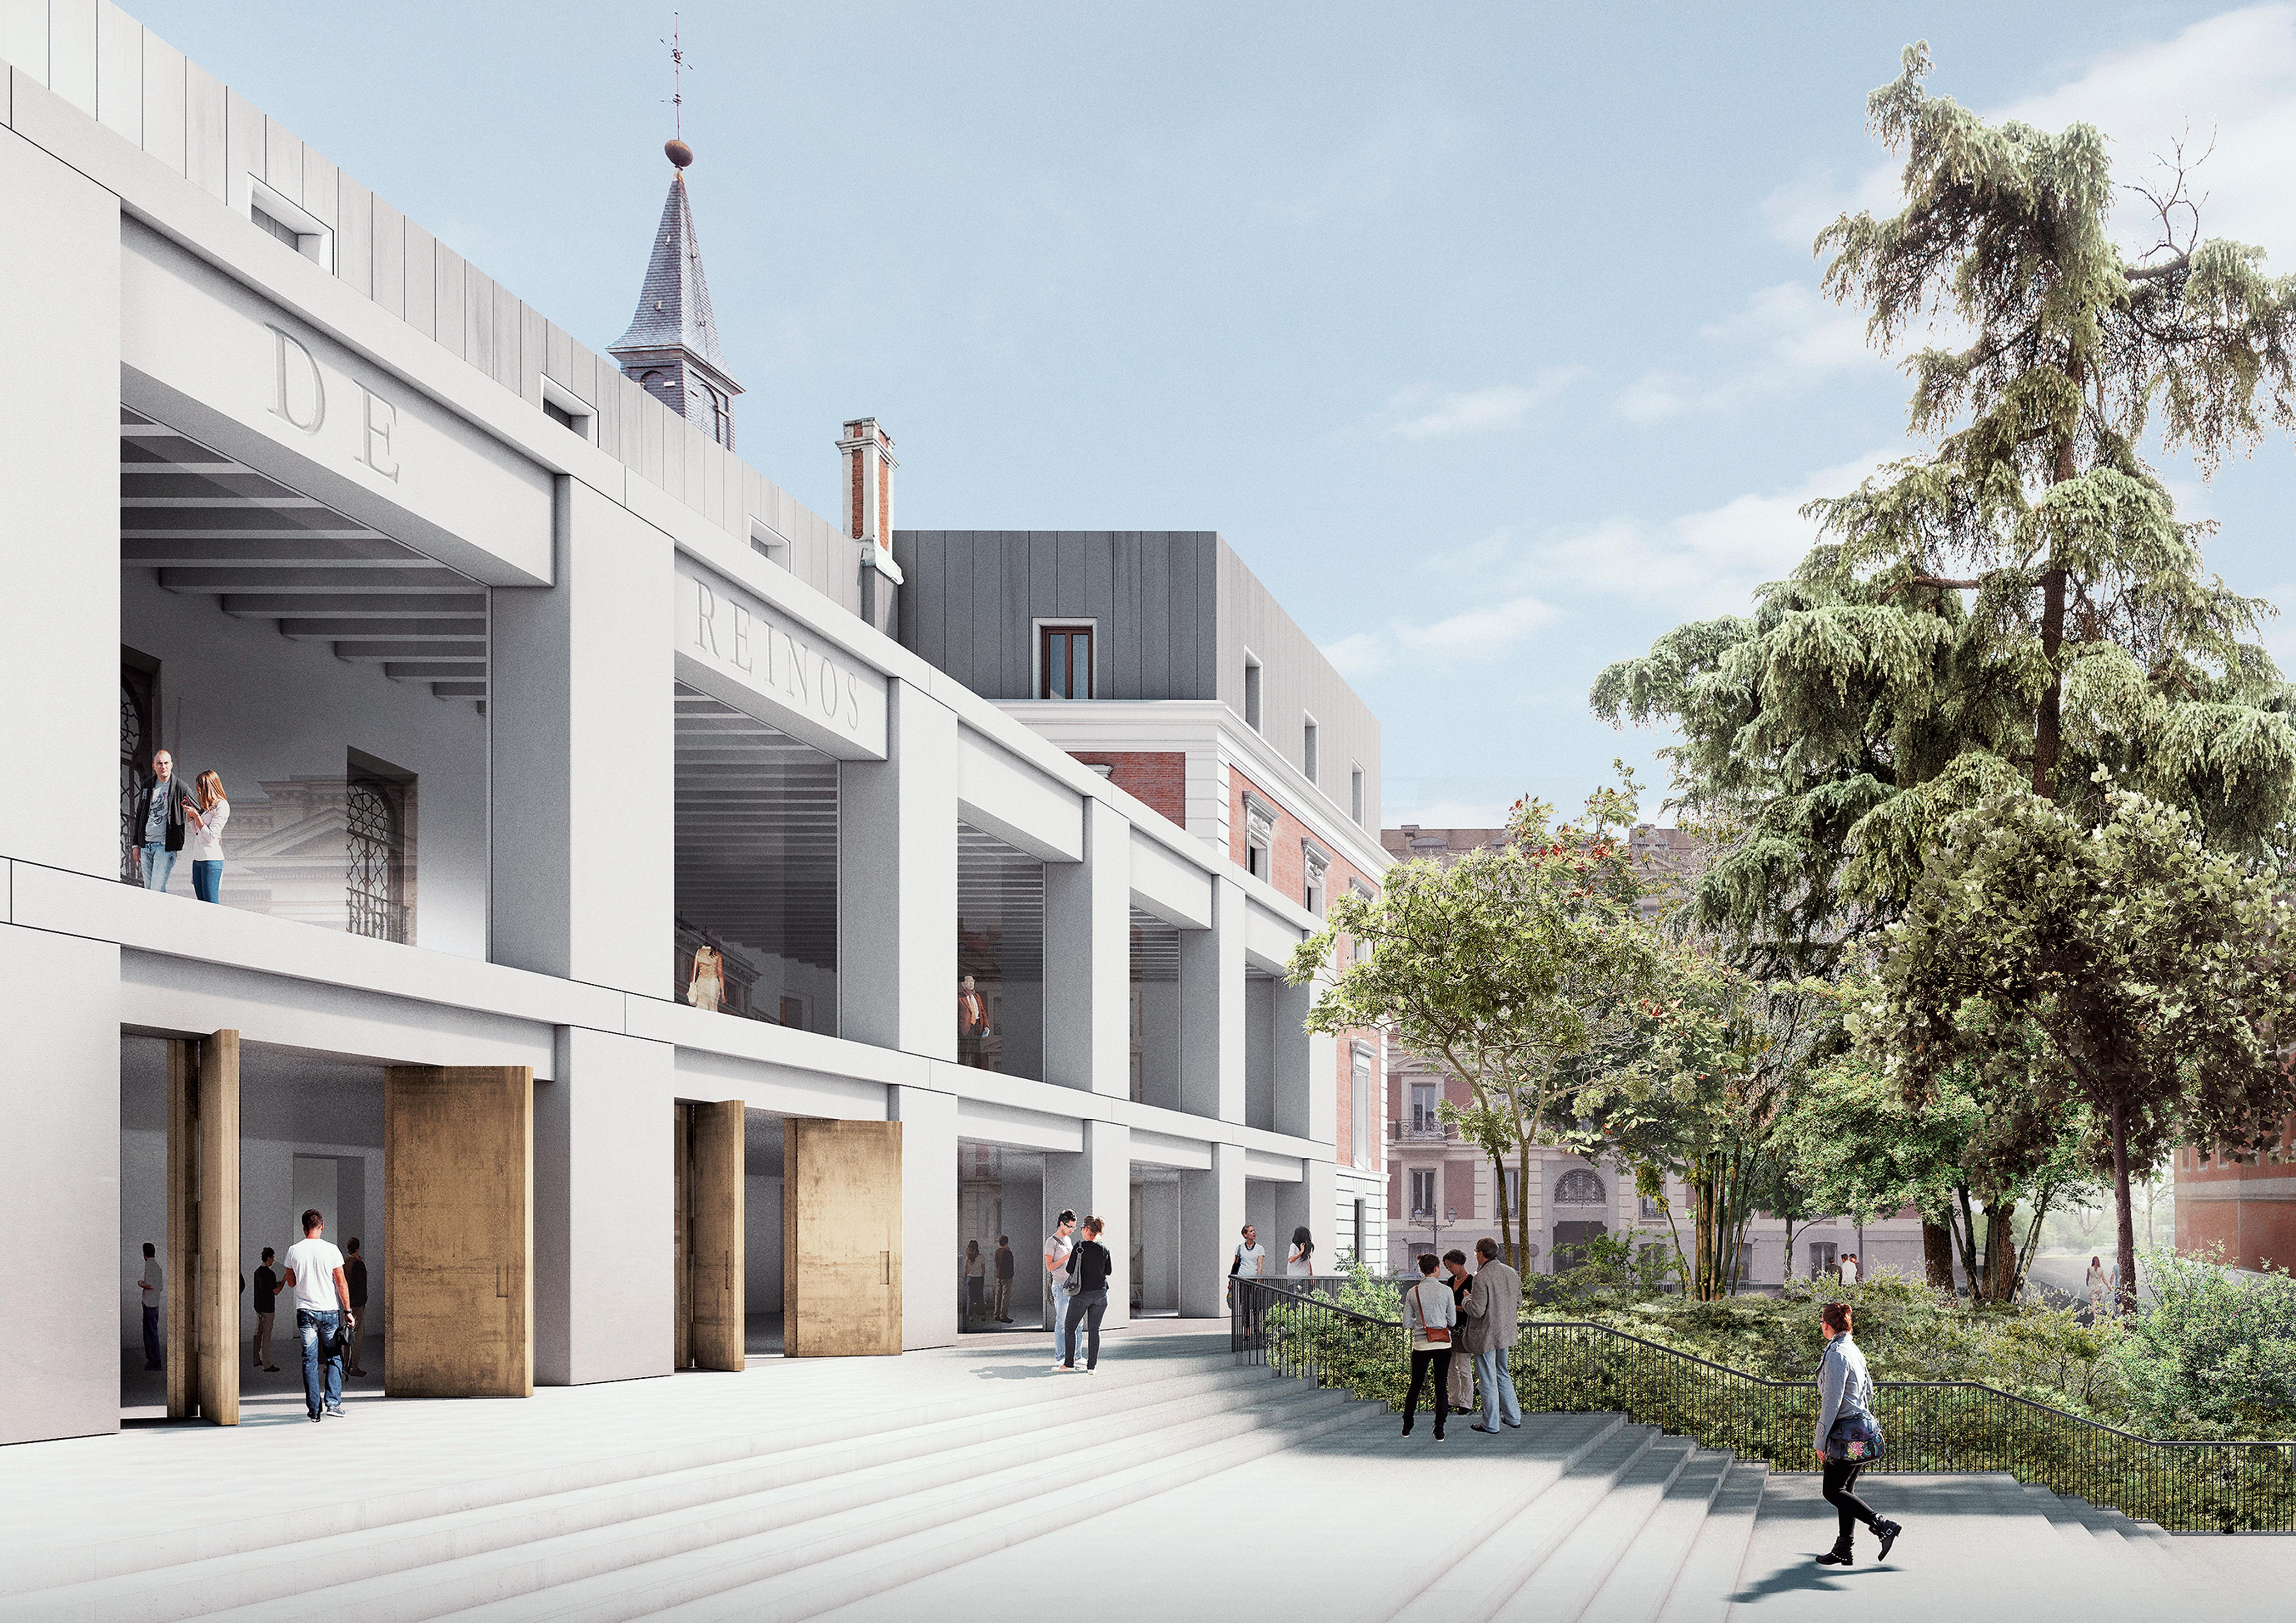 Prado Museum's Extension Competition